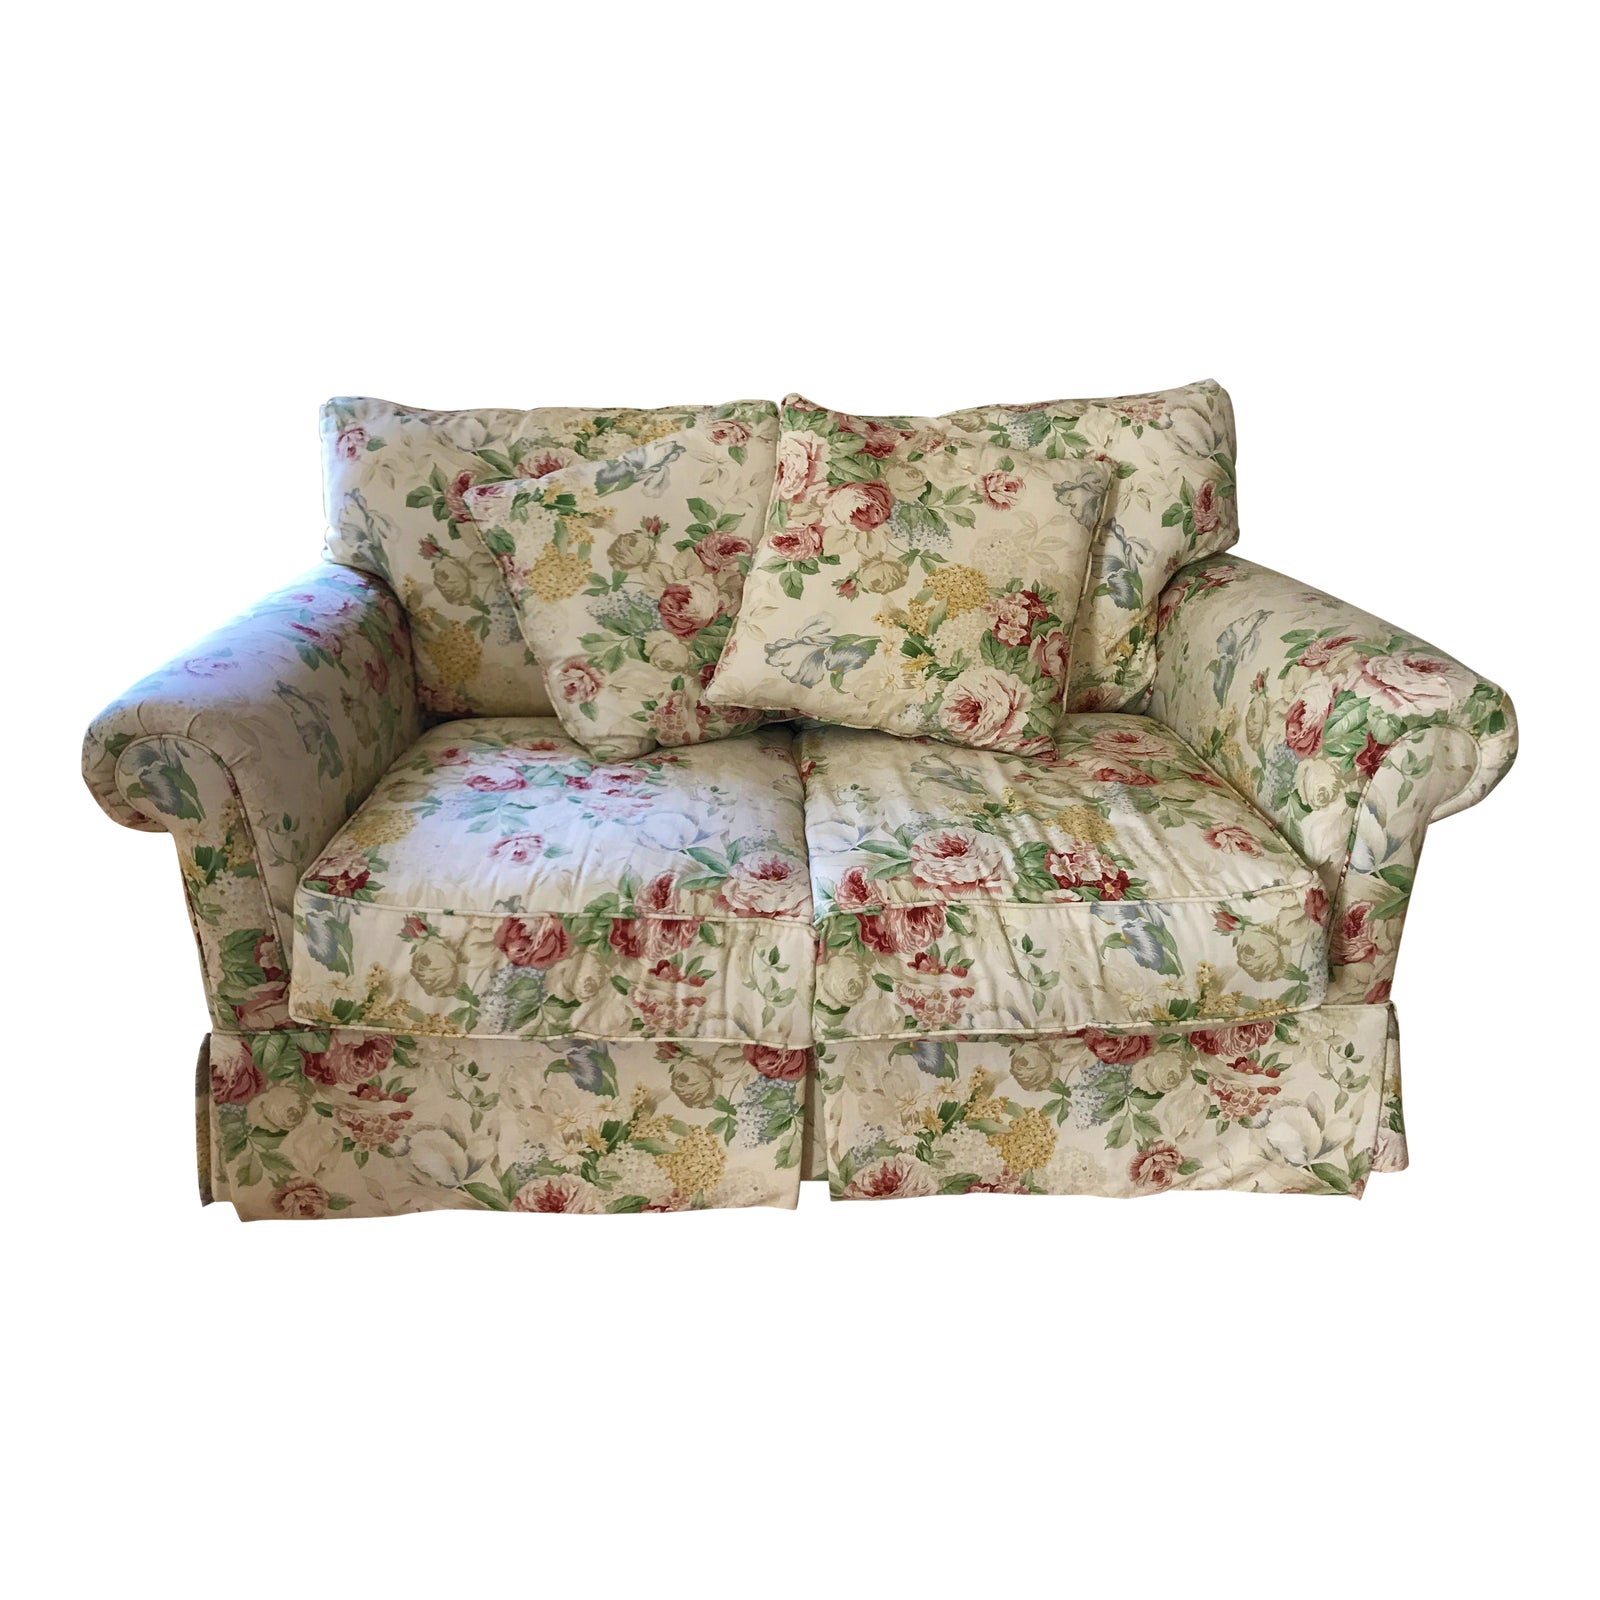 loveseats home cindy loveseat living room sofa cardinal under bellingham crawford seating furniture